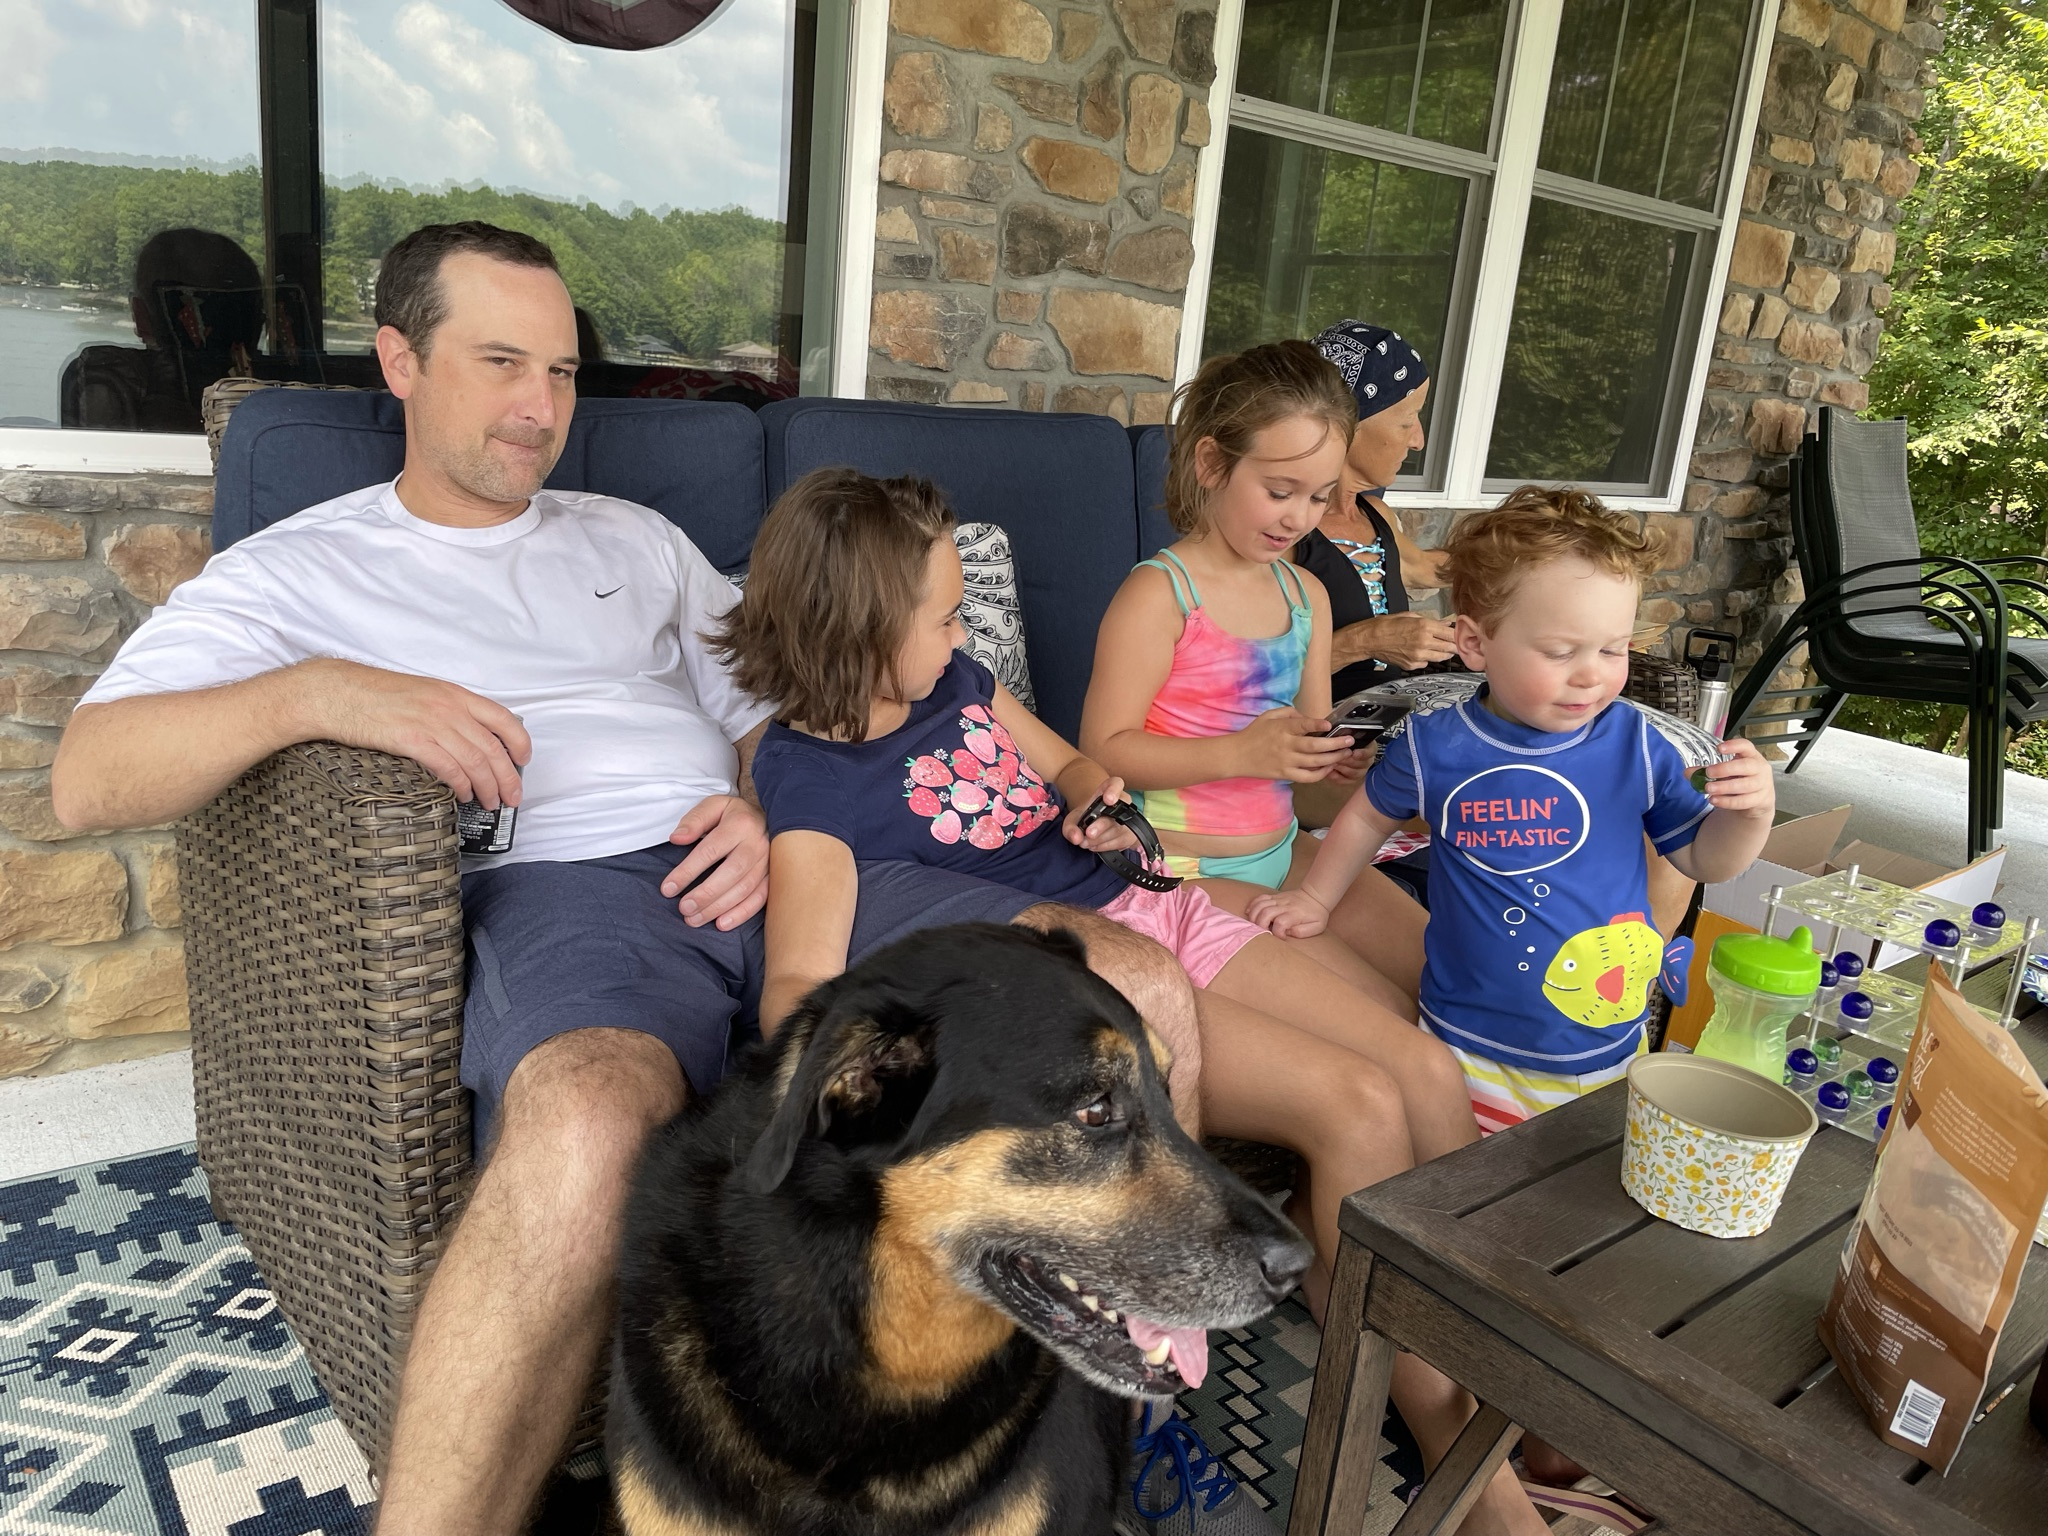 Family relaxing on a lakeside patio